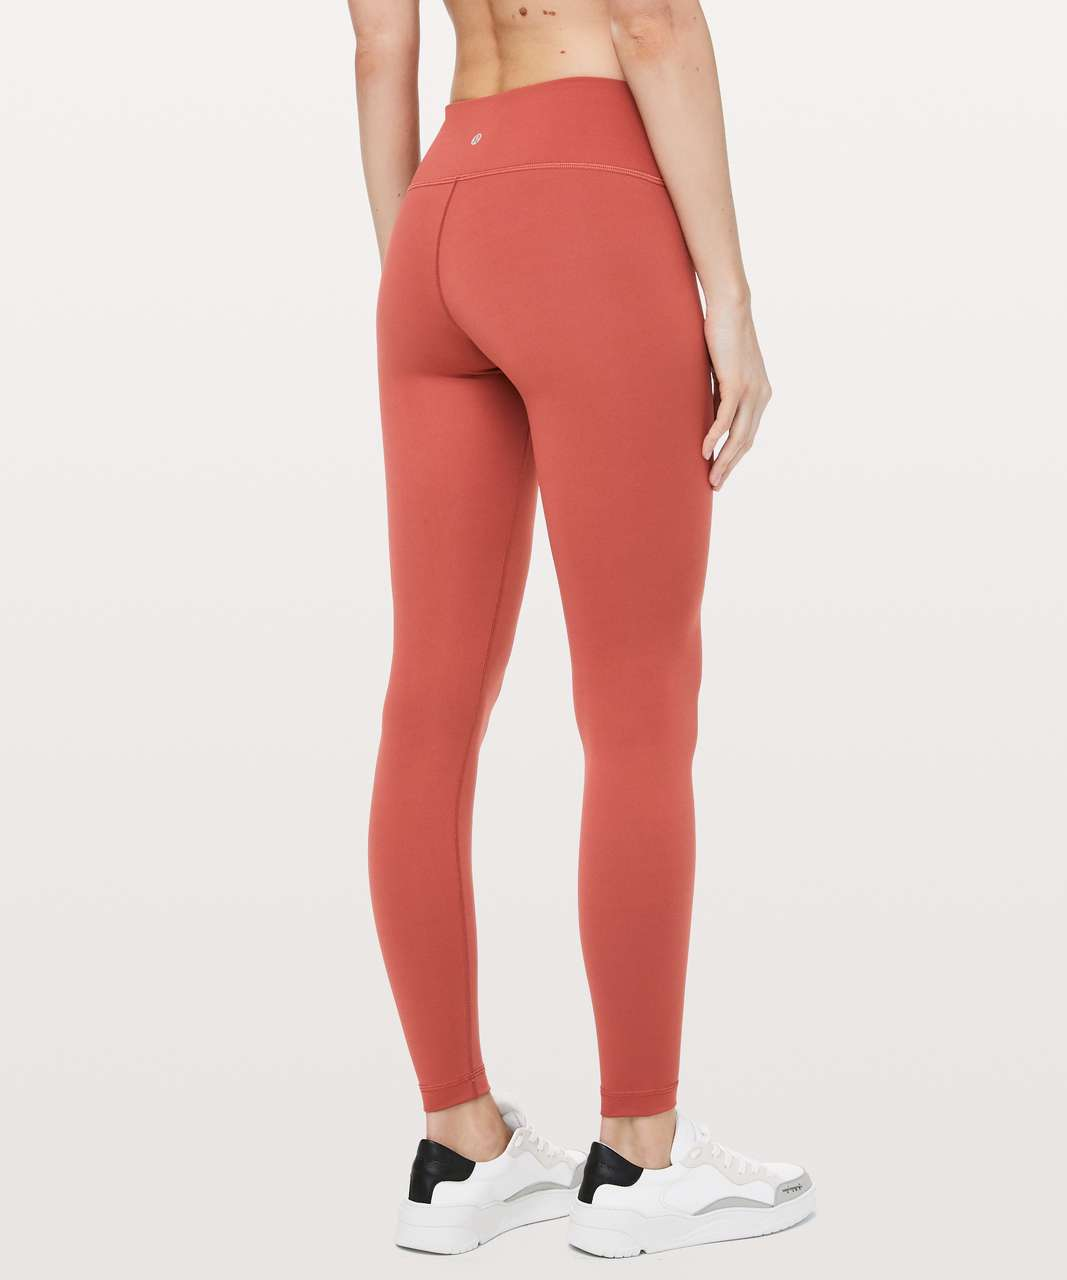 "Lululemon Wunder Under Low-Rise Tight * Full-On Luxtreme 28"" - Brick Rose"